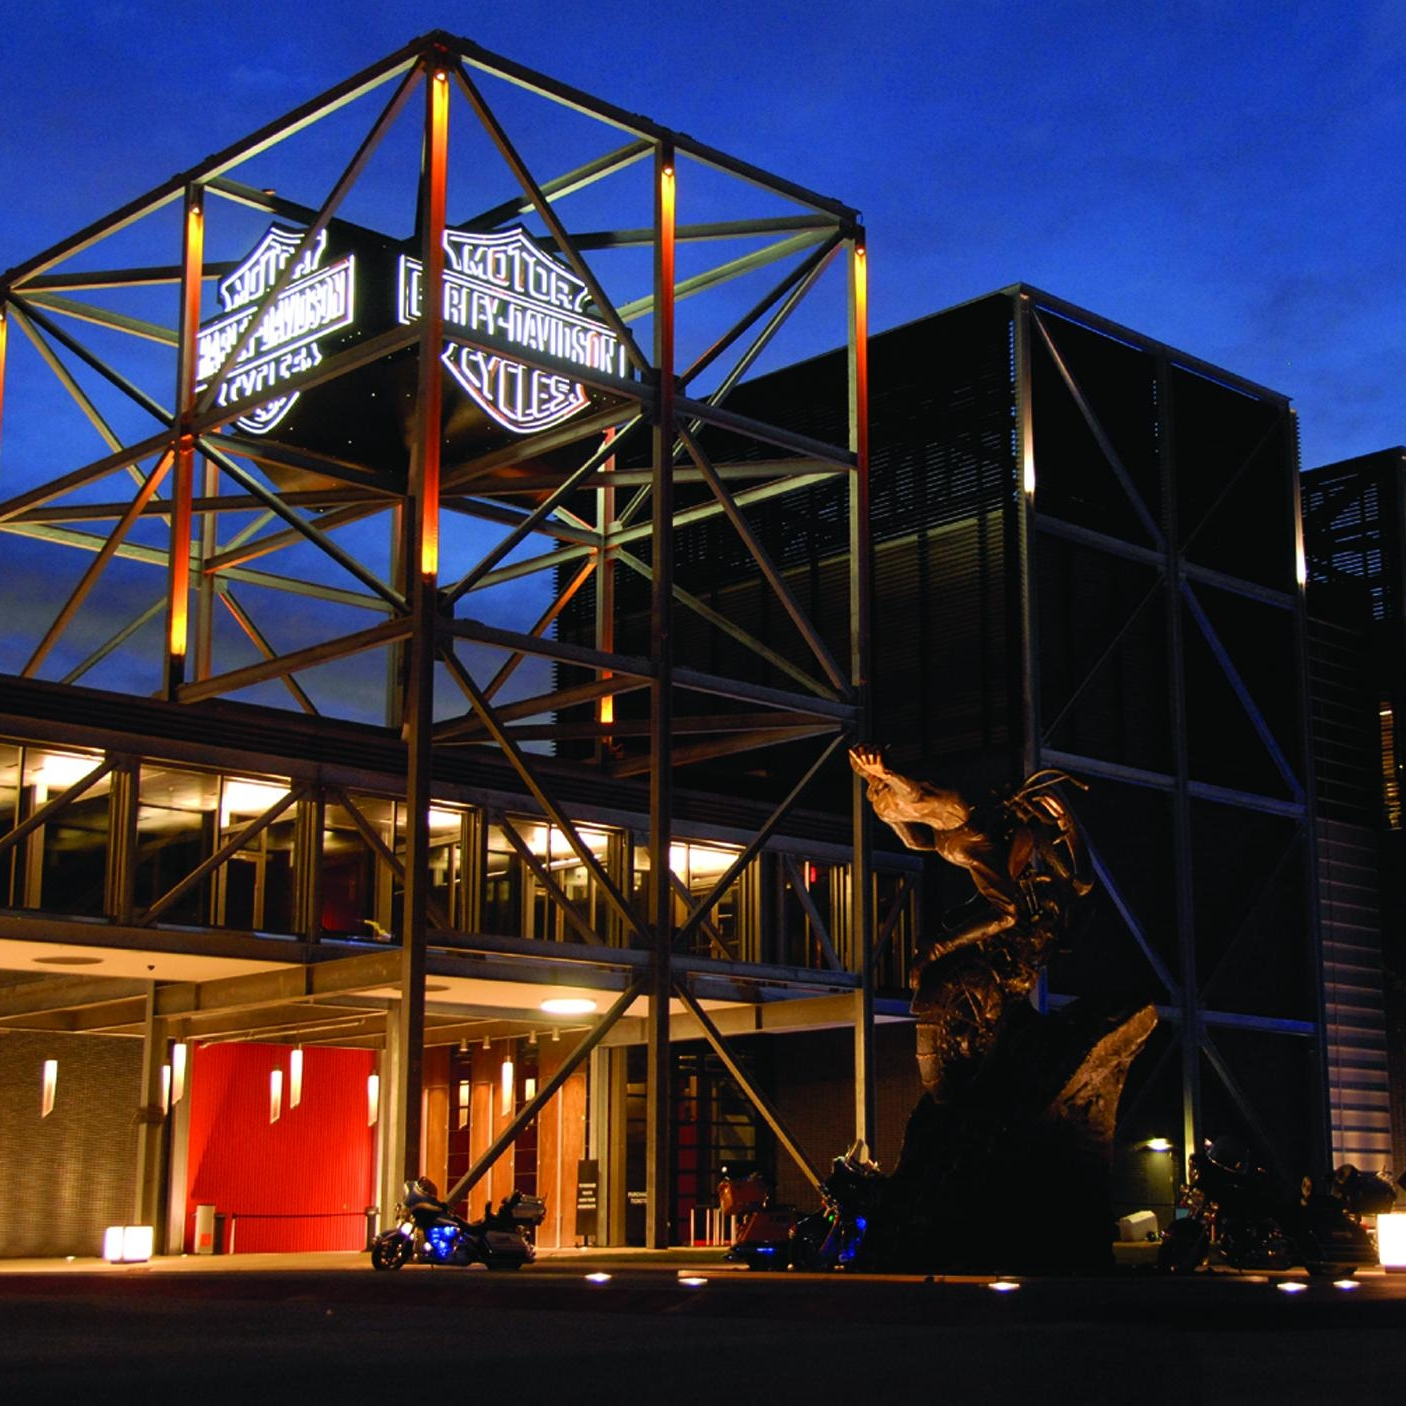 Harley-Davidson Museum® - History roars to life at the Harley-Davidson Museum.® It's the best of American design and culture – seasoned with freedom and rebellion, showcased in a landmark building. See why the Museum is one of Milwaukee's top tourist destinations.